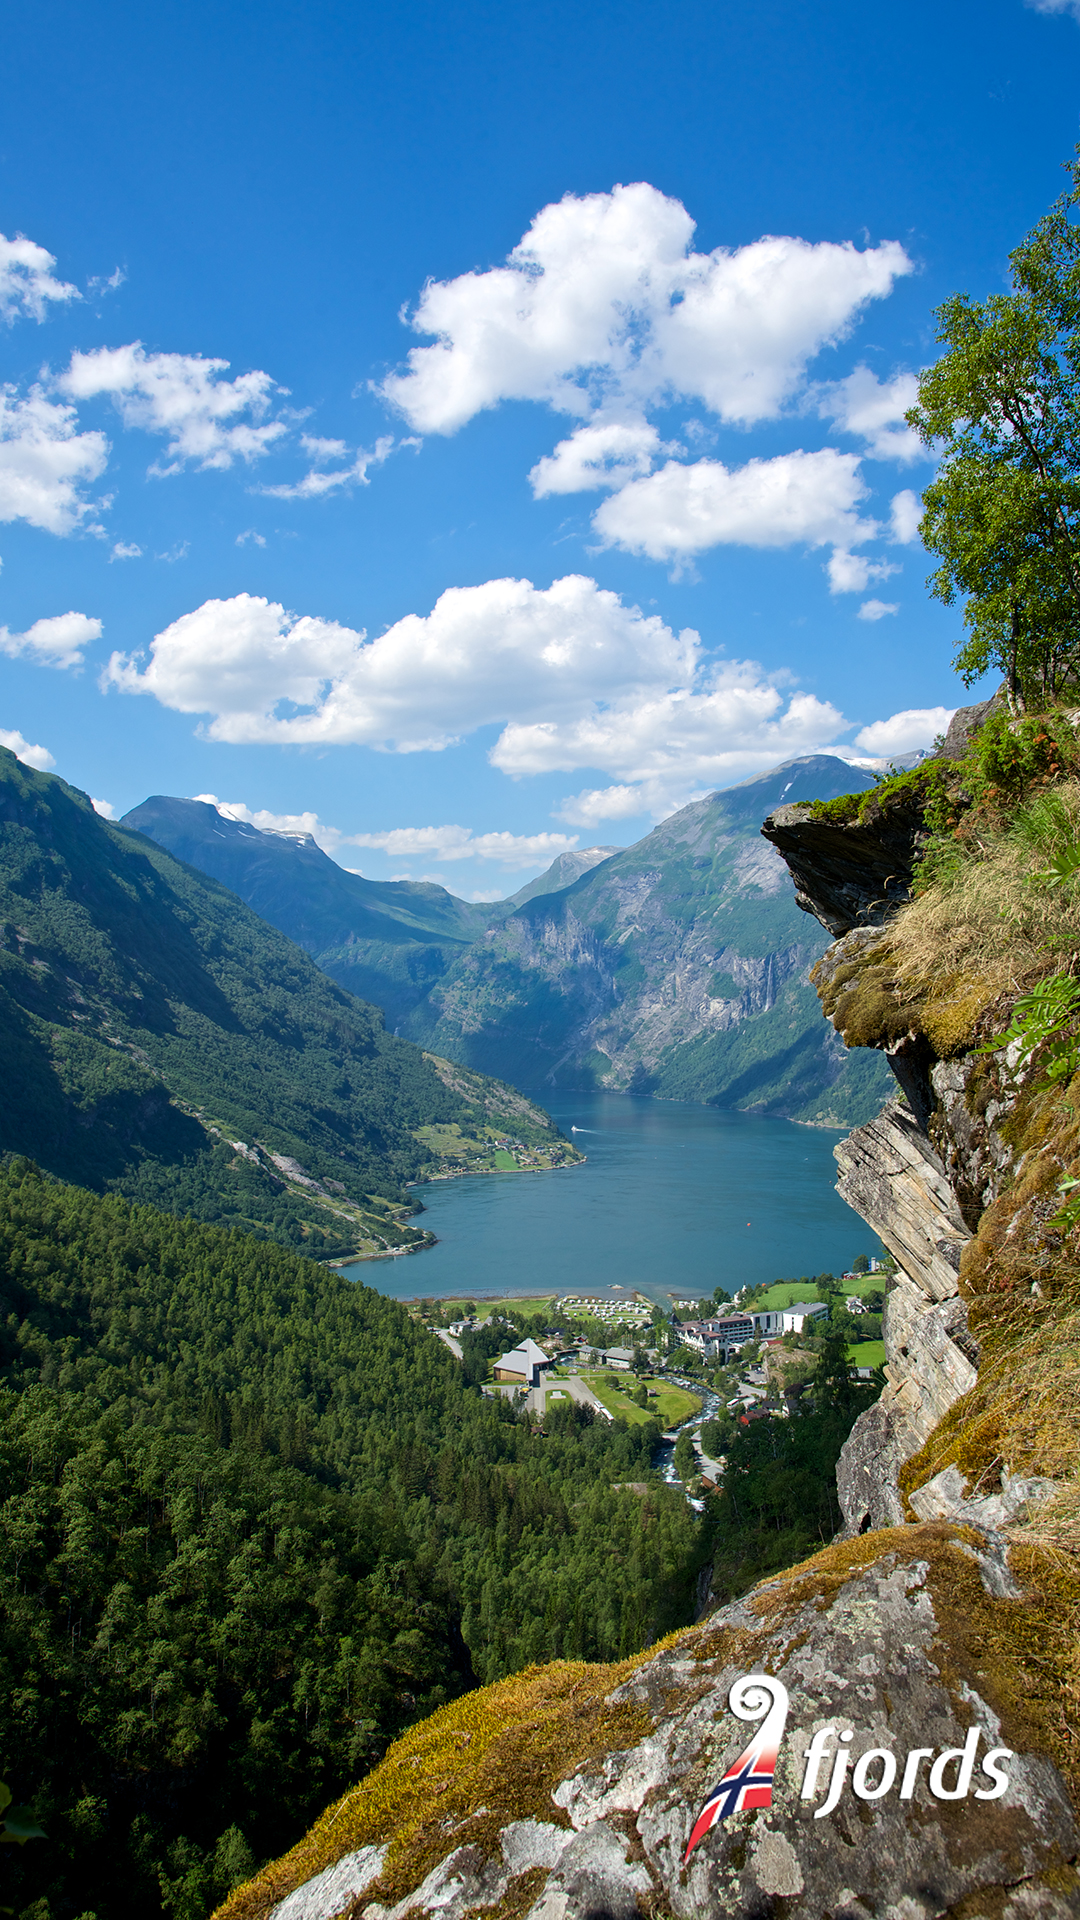 Mobile phone background images norwegian fjords western norway read also download wallpaper from the fjords voltagebd Image collections